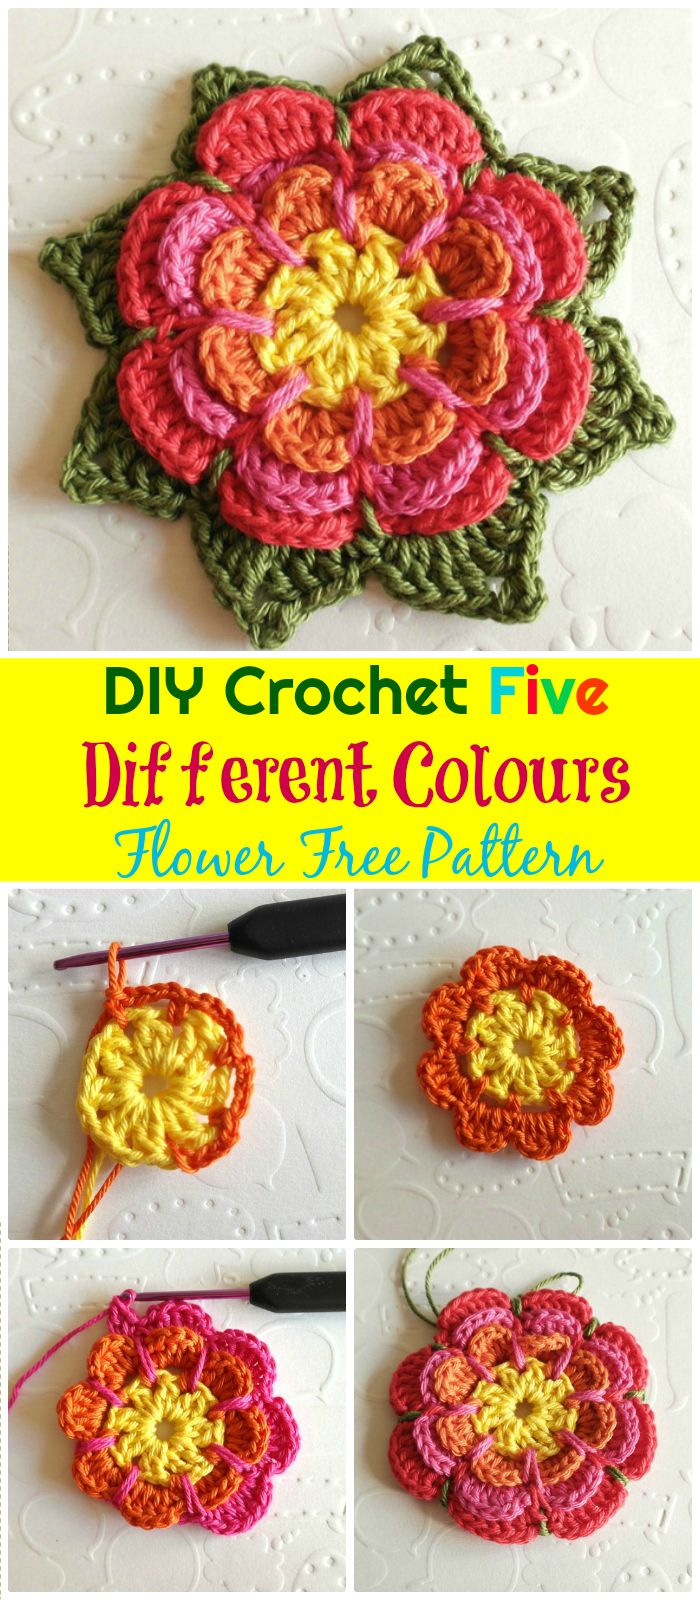 Crochet Different Colours Flower Free Pattern - crochet flower pattern free | crochet flower pattern | crochet flower pattern free easy